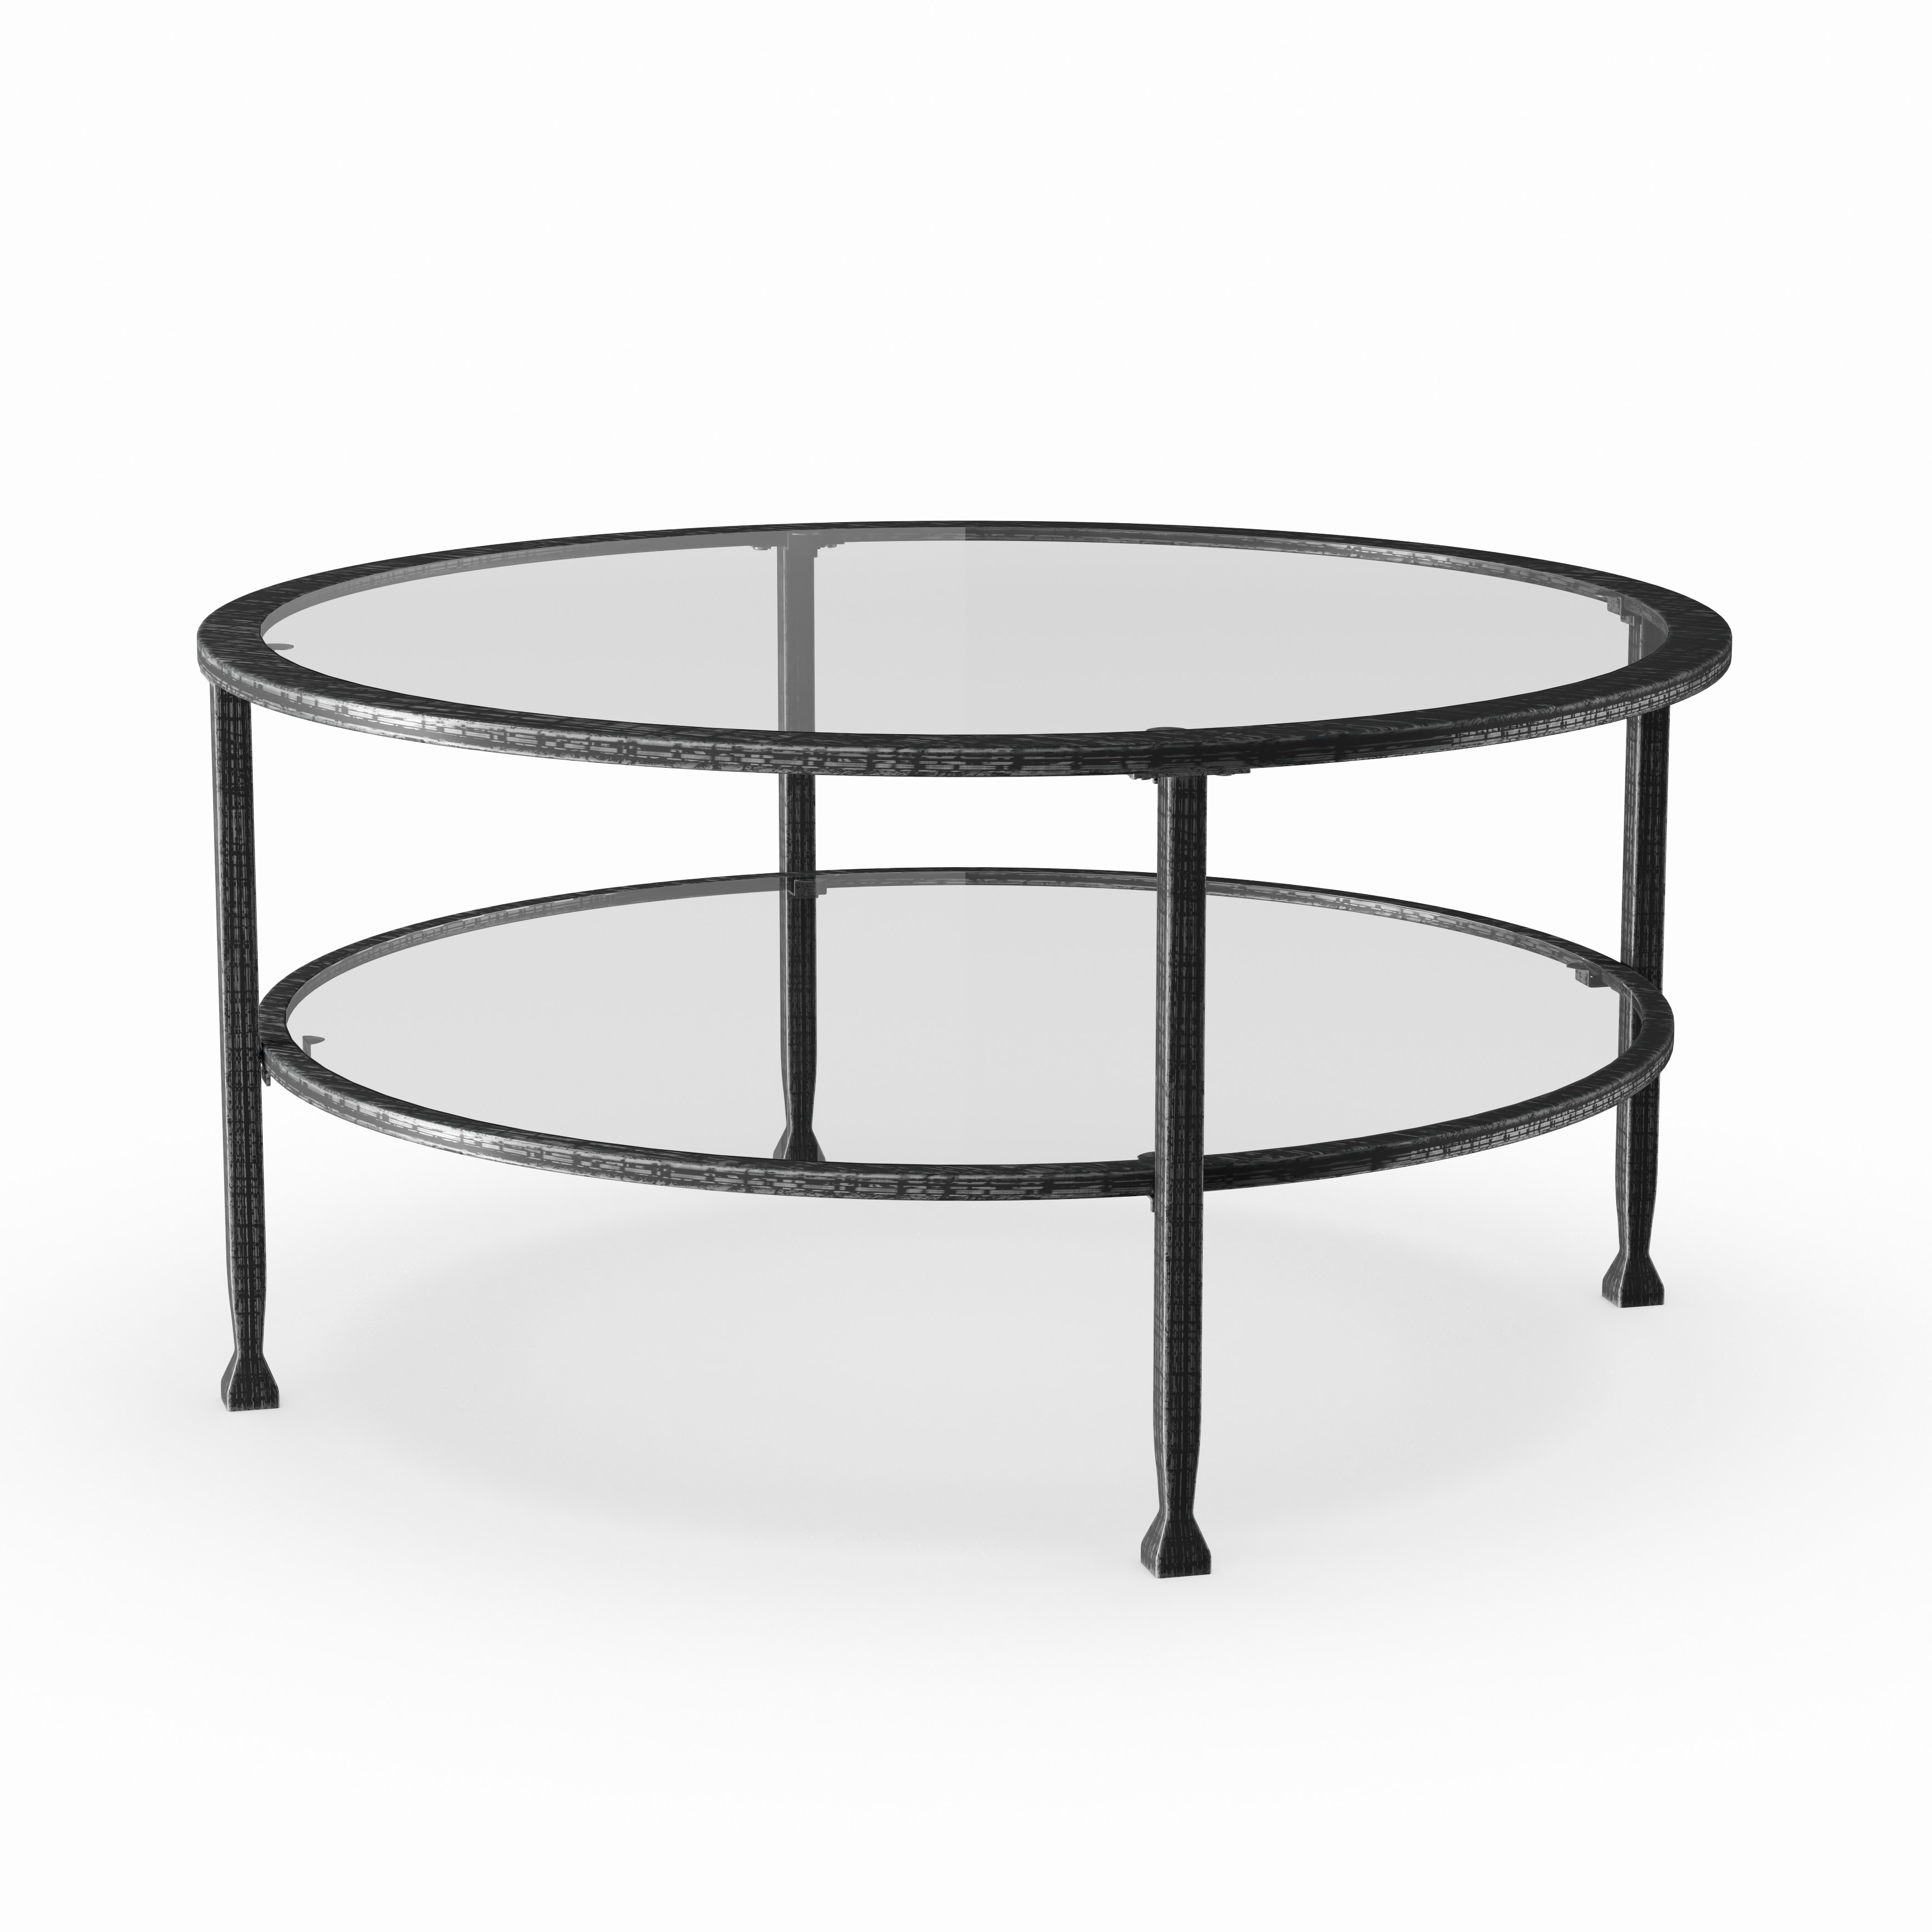 Carbon Loft Glenn Metal/ Glass Round Cocktail Table With Most Recently Released Carbon Loft Heimlich Metal Glass Rectangle Coffee Tables (View 3 of 20)